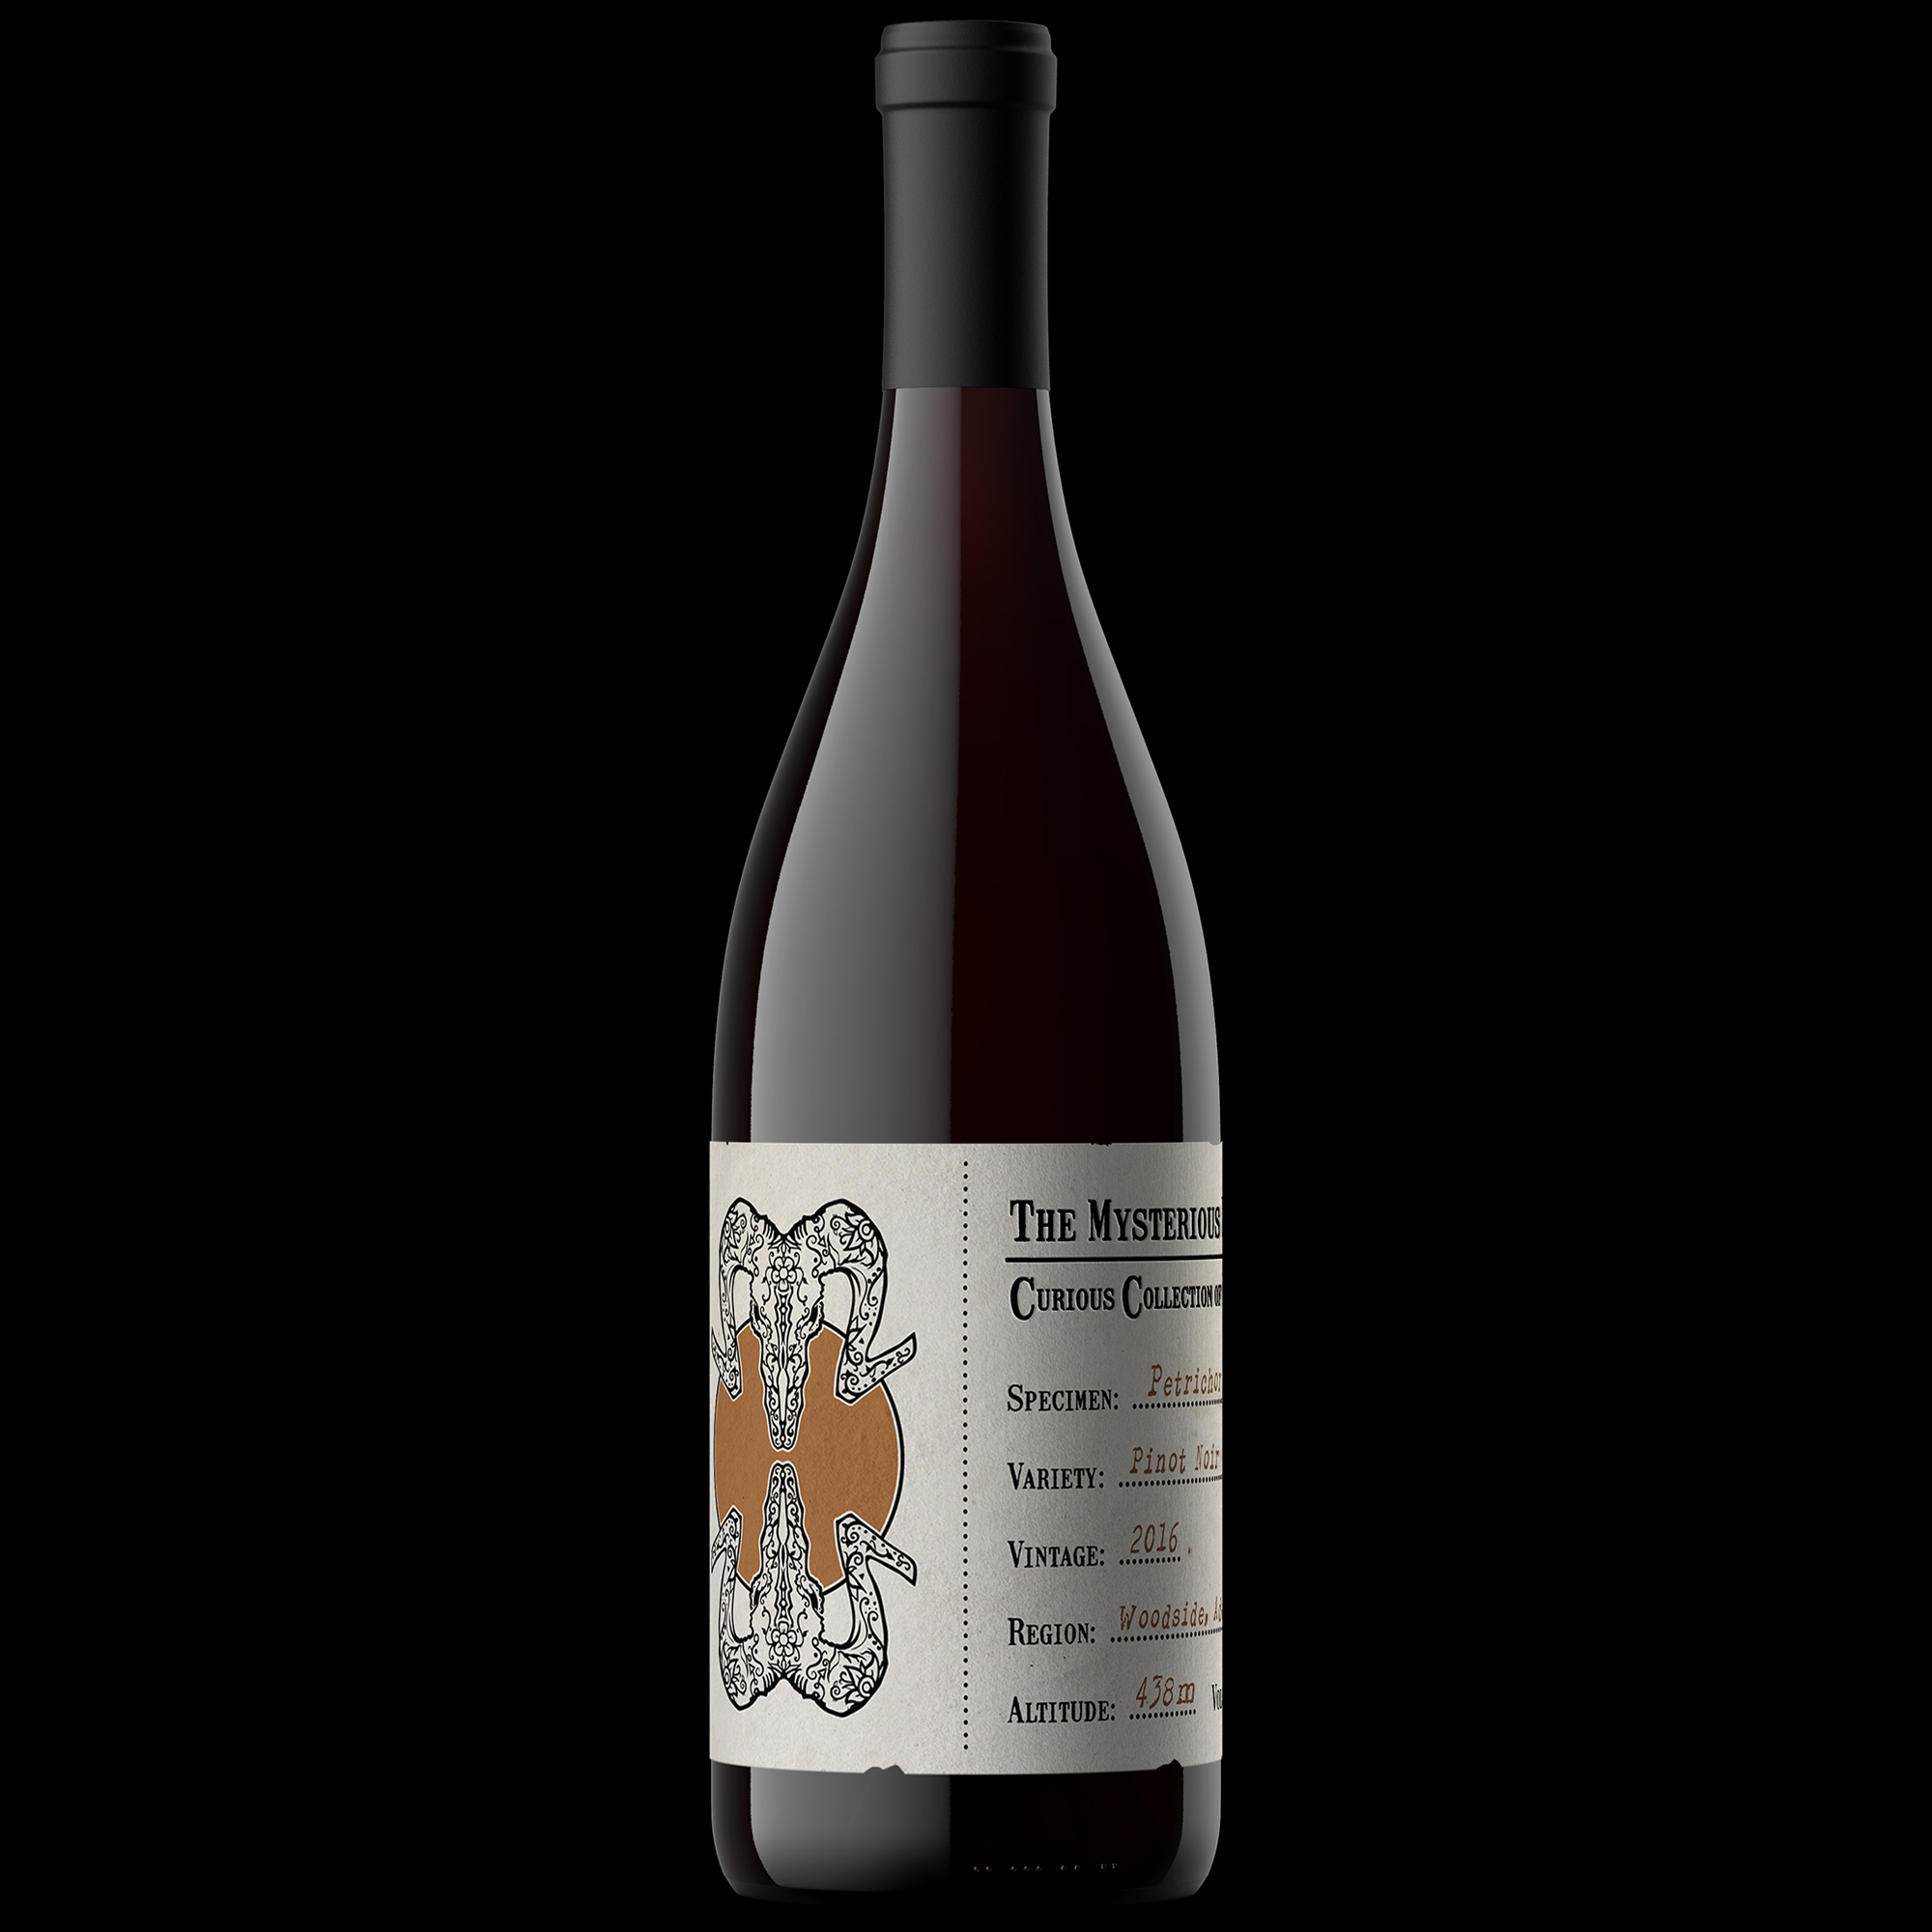 S-2018-Petrichor-Woodside-Pinot-Noir-Barossa-Valley-The-Mysterious-Mr-Blacks-Curious-Collection-Wine-Australia